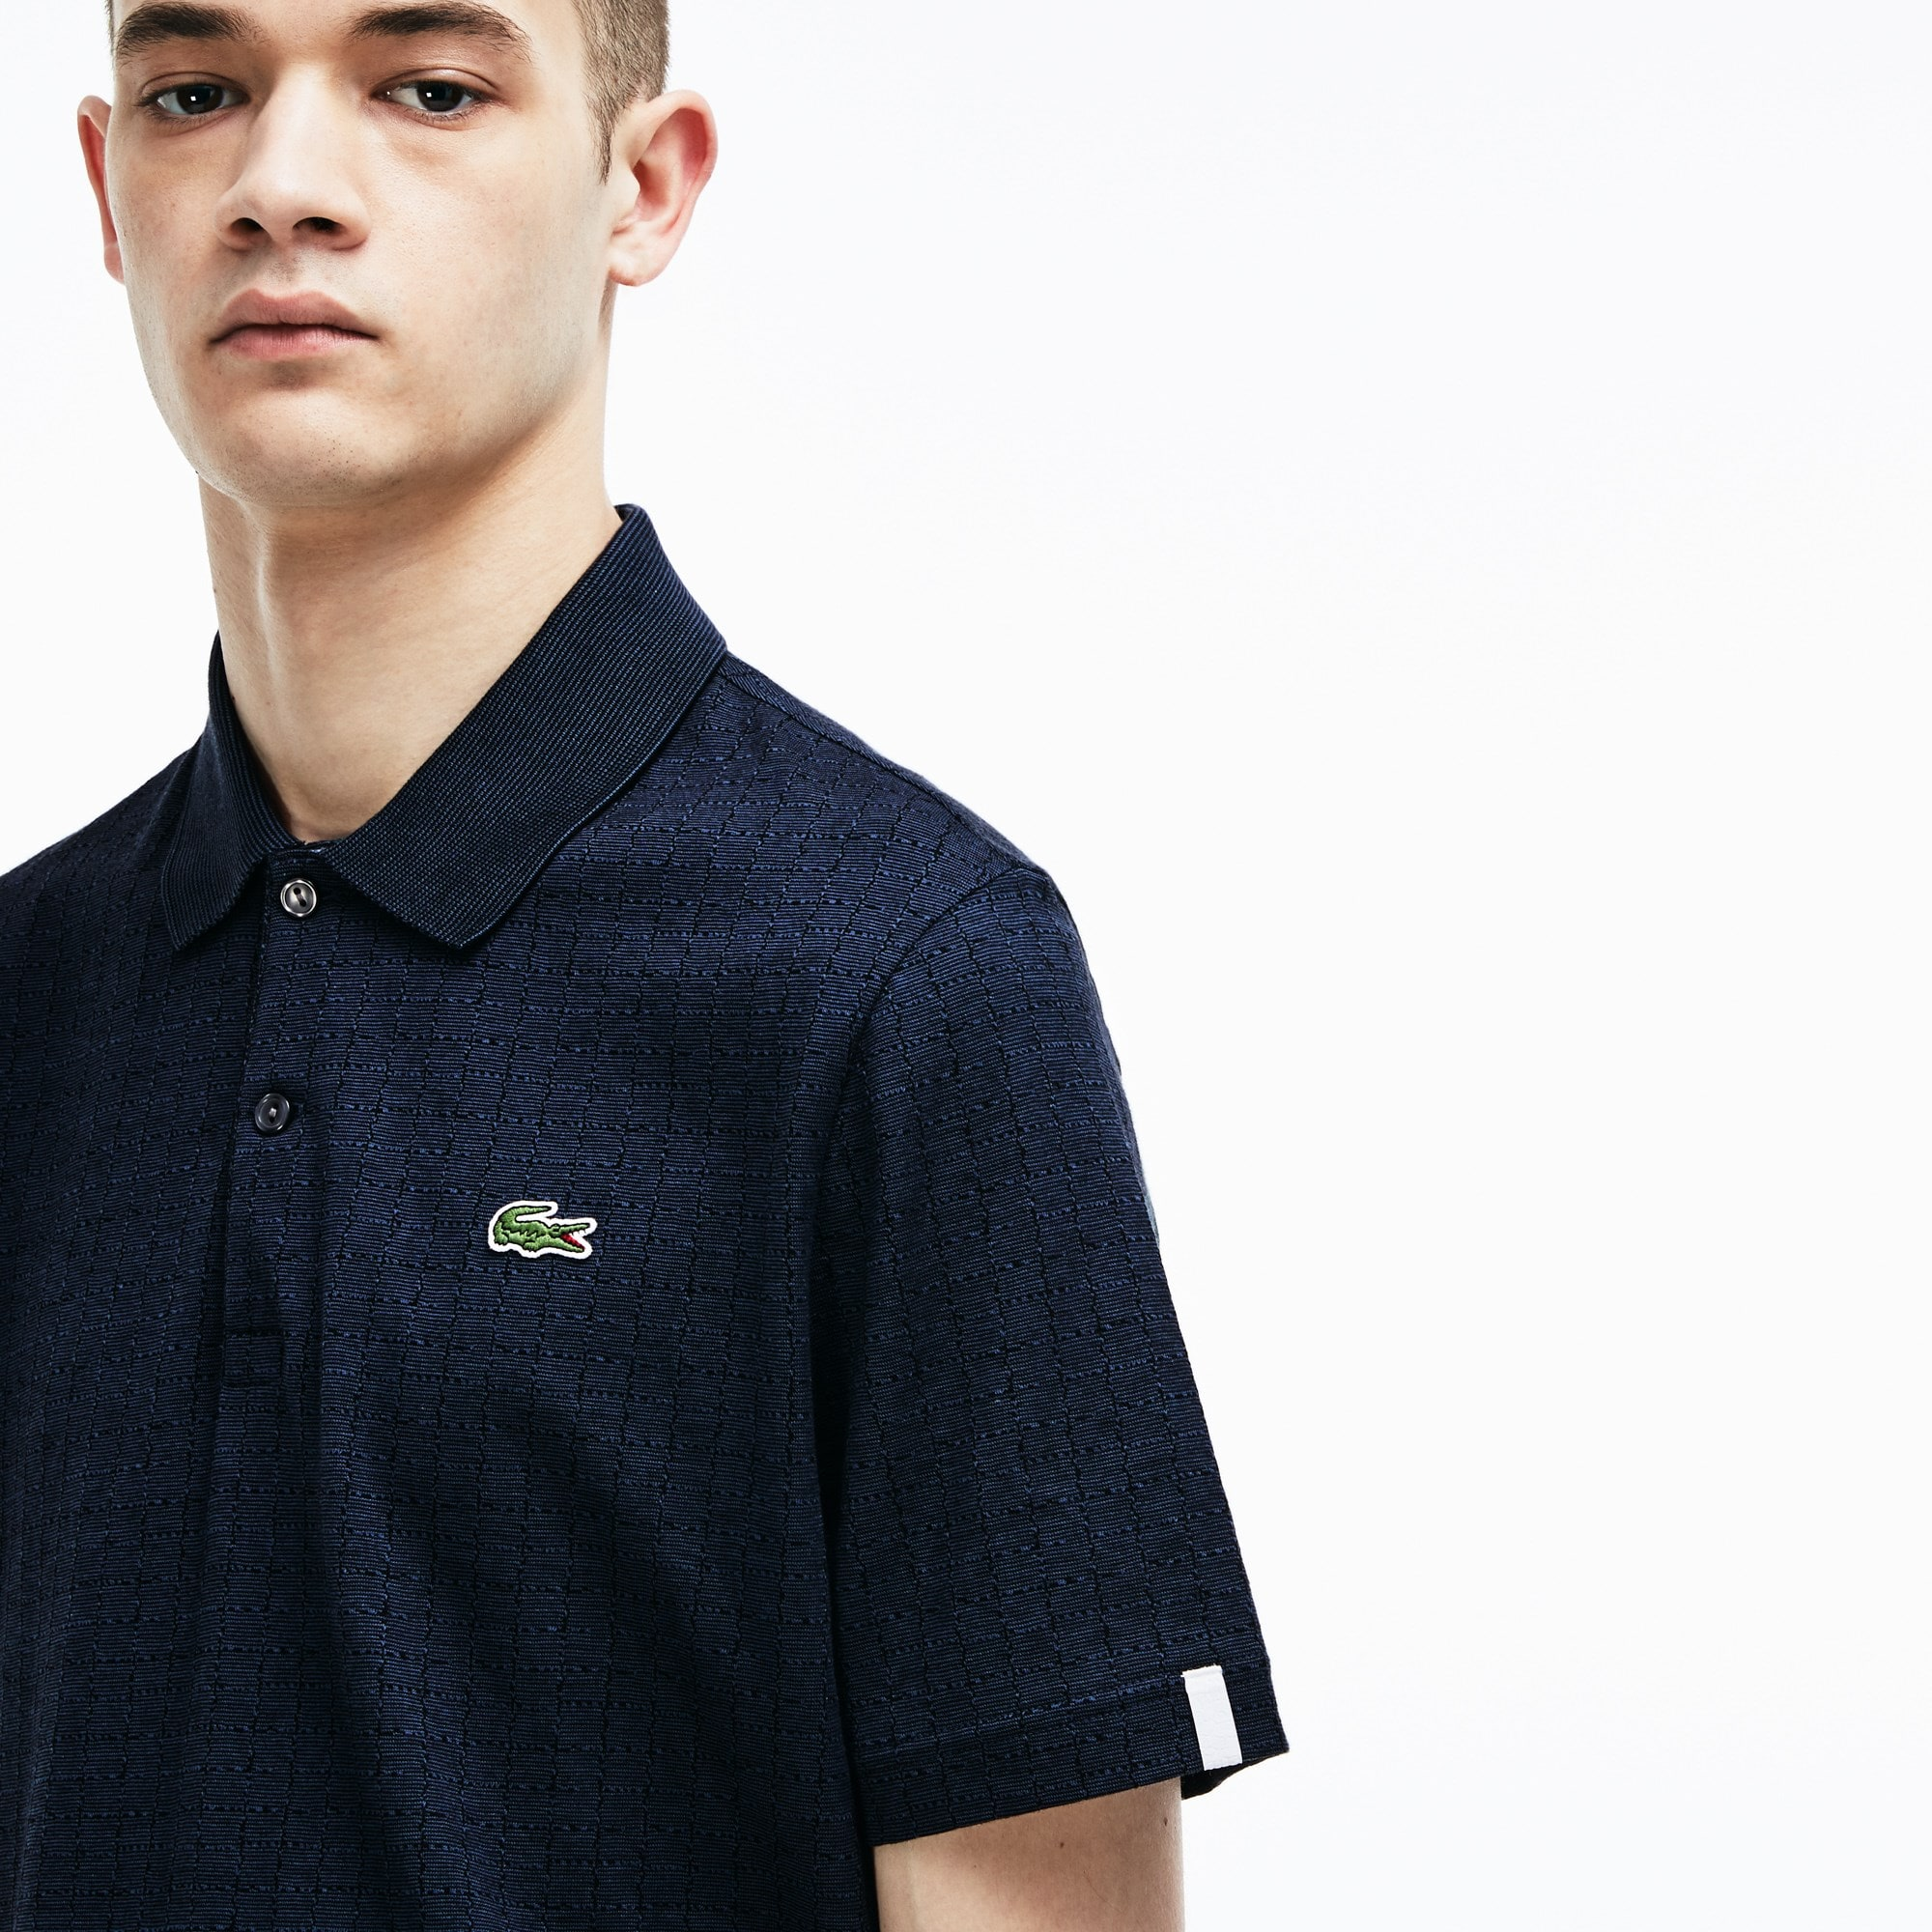 Men's Lacoste LIVE Regular Fit Print Cotton Jacquard Polo Shirt